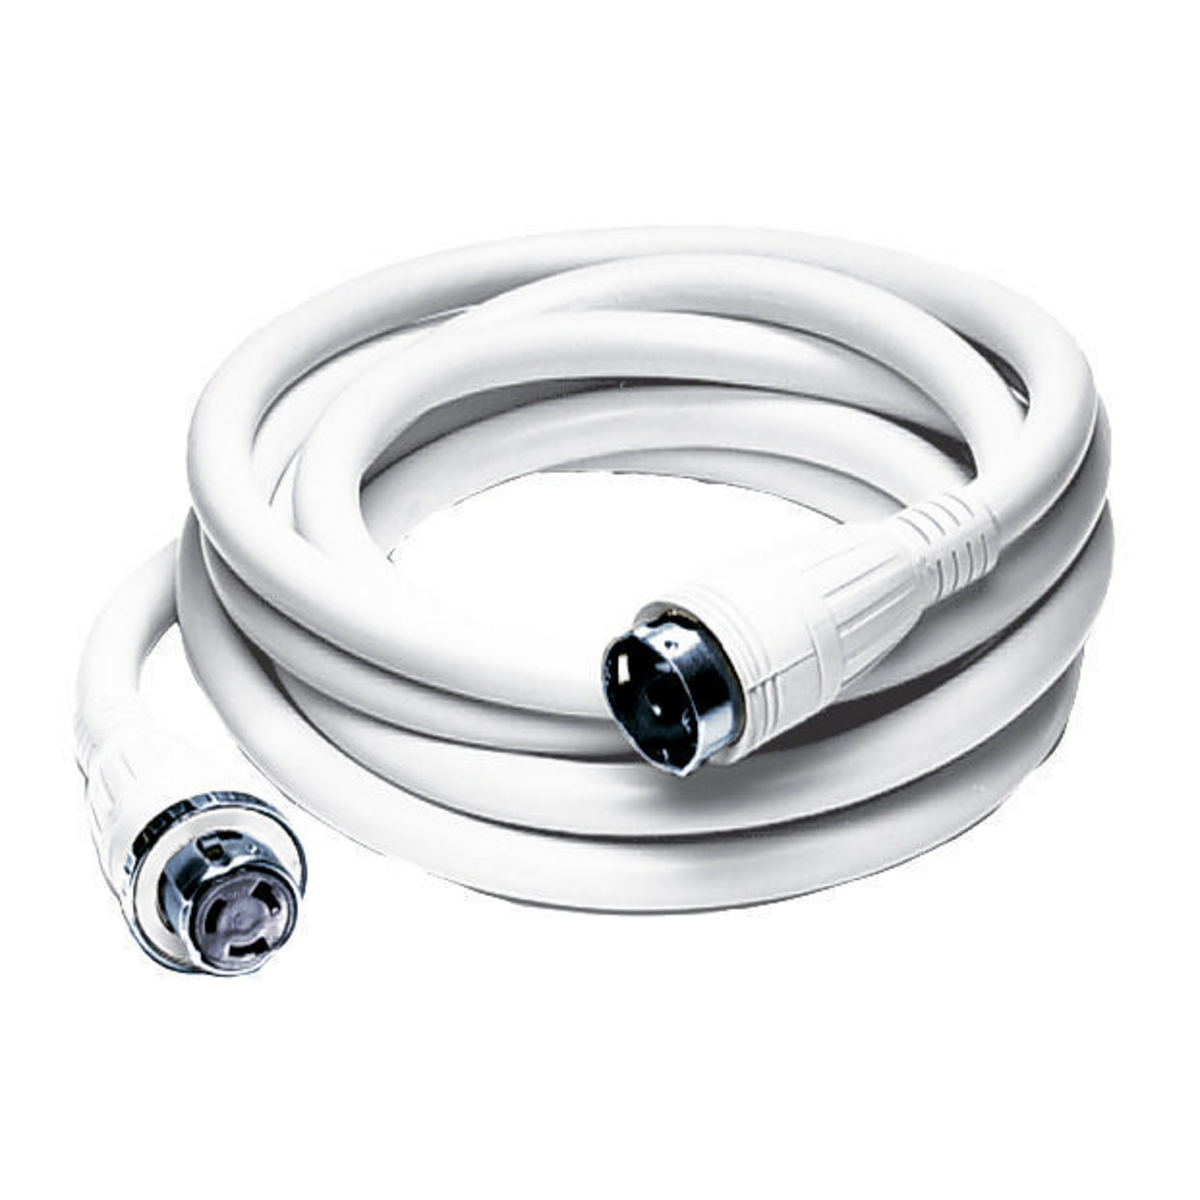 Hubbell HBL61CM52W Marine CABLE, 50', 50A 125/250V, WH